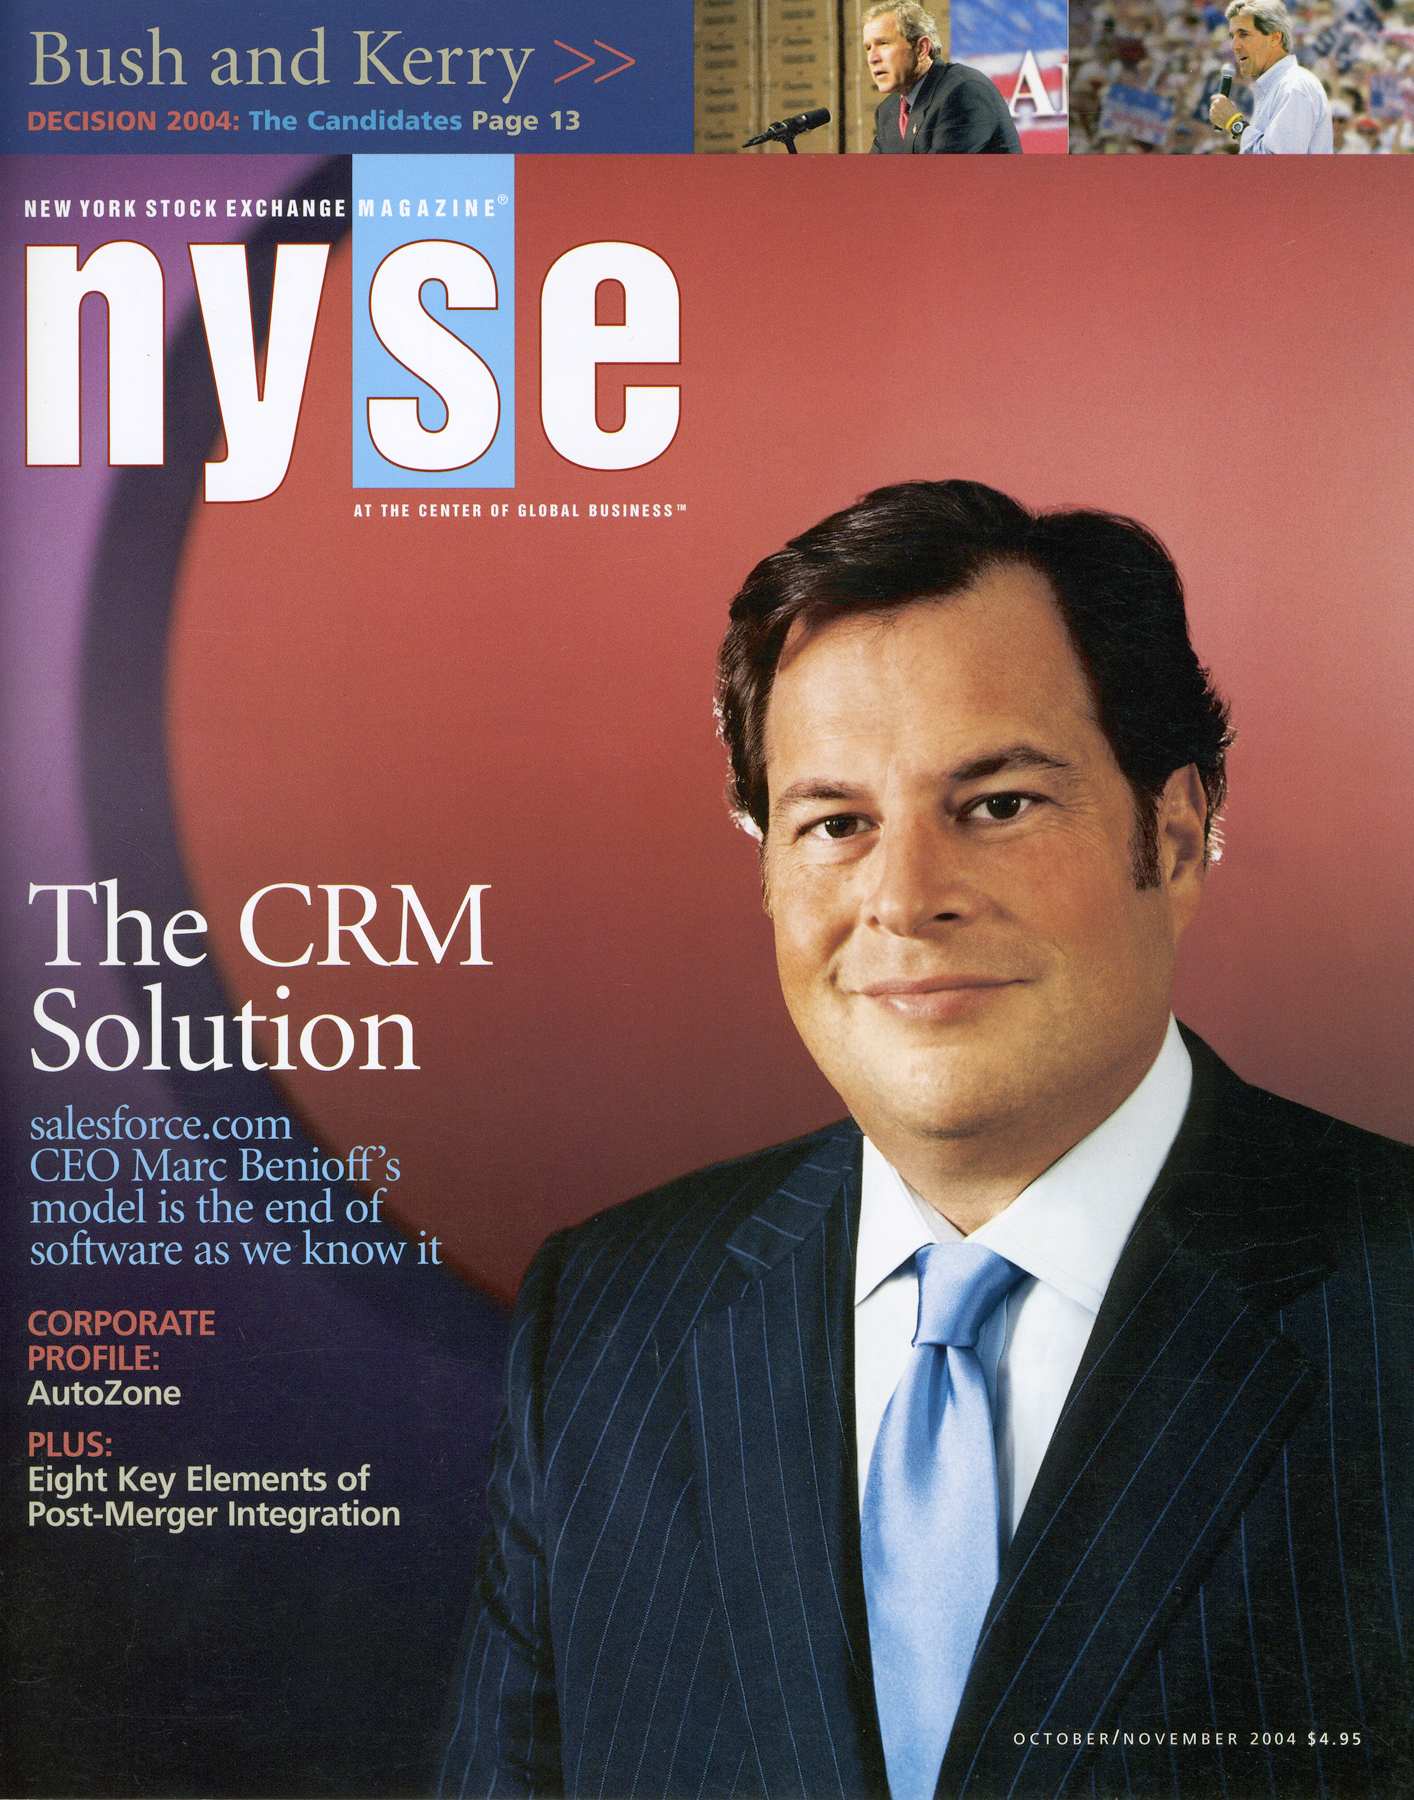 18NYSE cover001.jpg